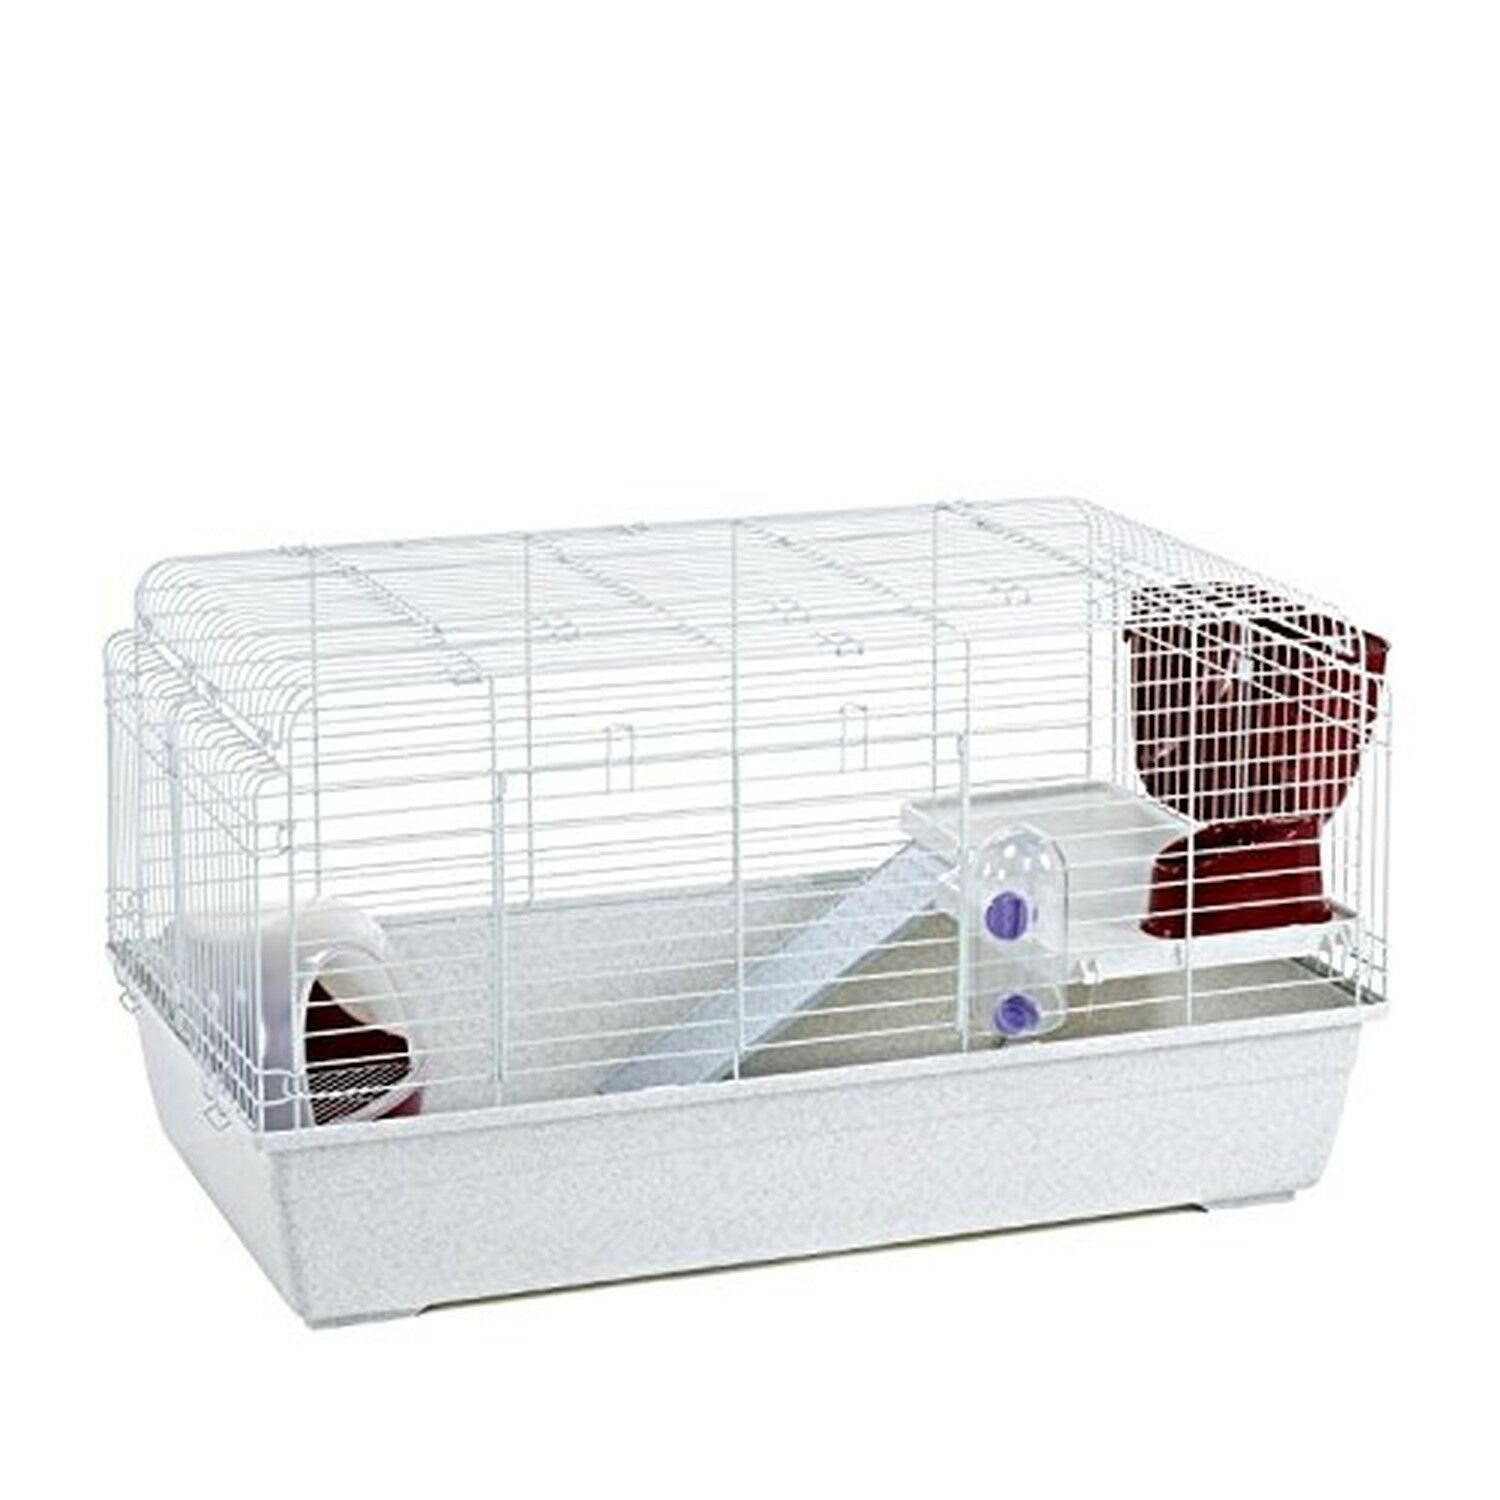 LITTLE FRIENDS Paris 100 Indoor Rabbit Cage with Accessories 100cm